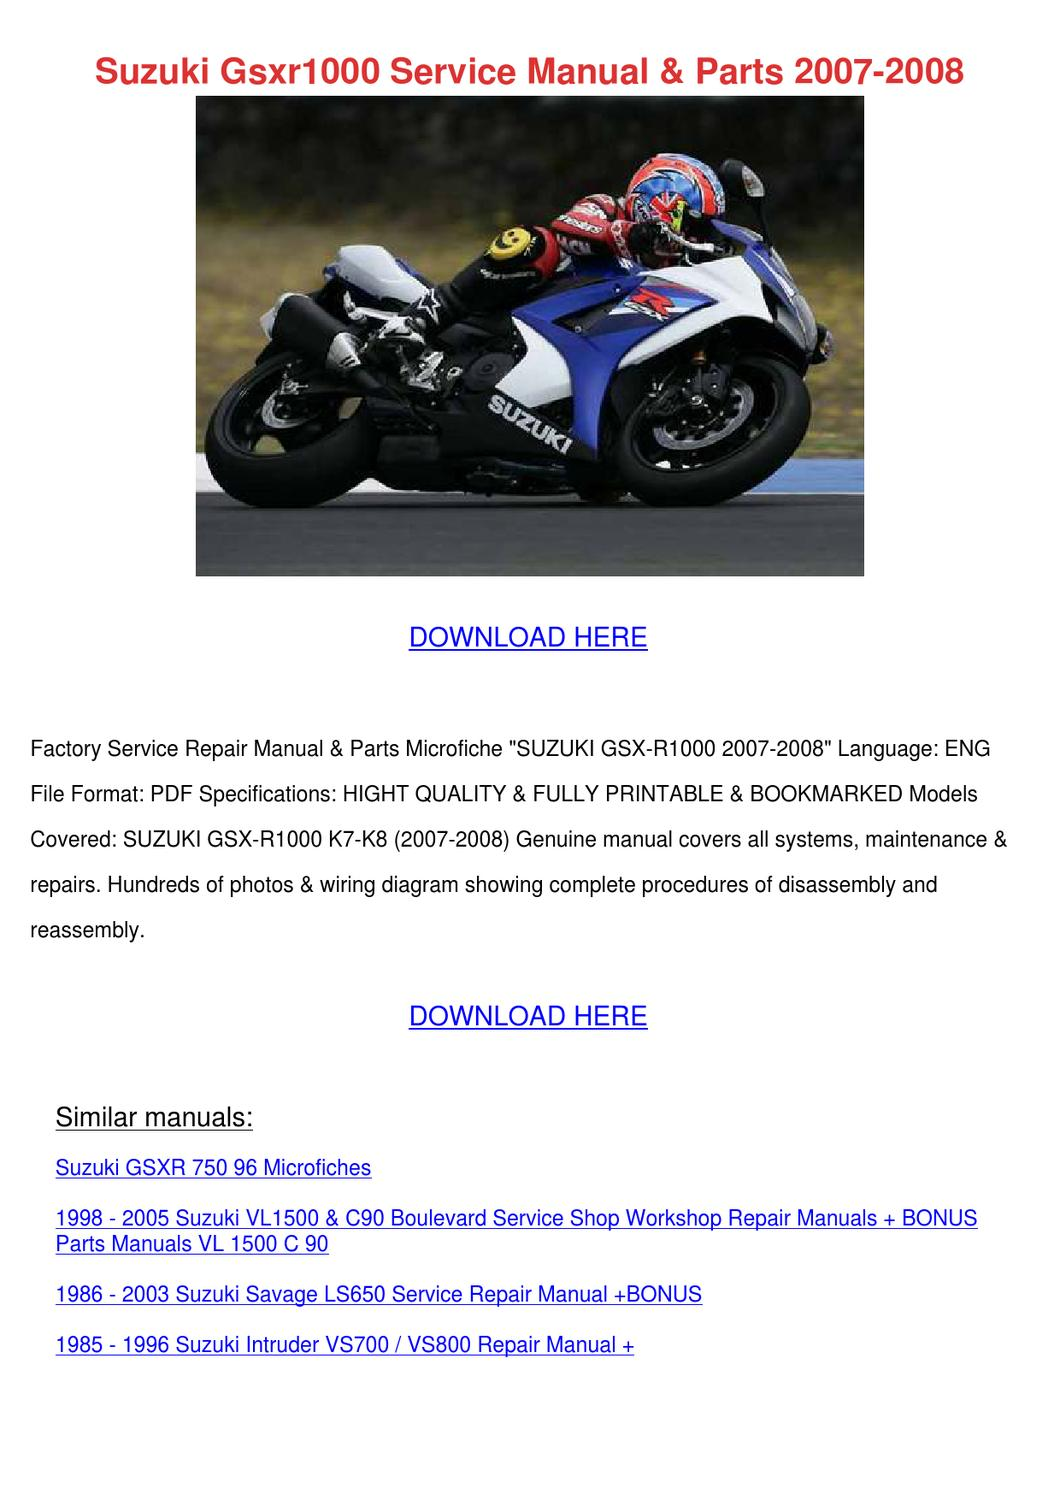 suzuki gsxr1000 service manual parts 2007 200